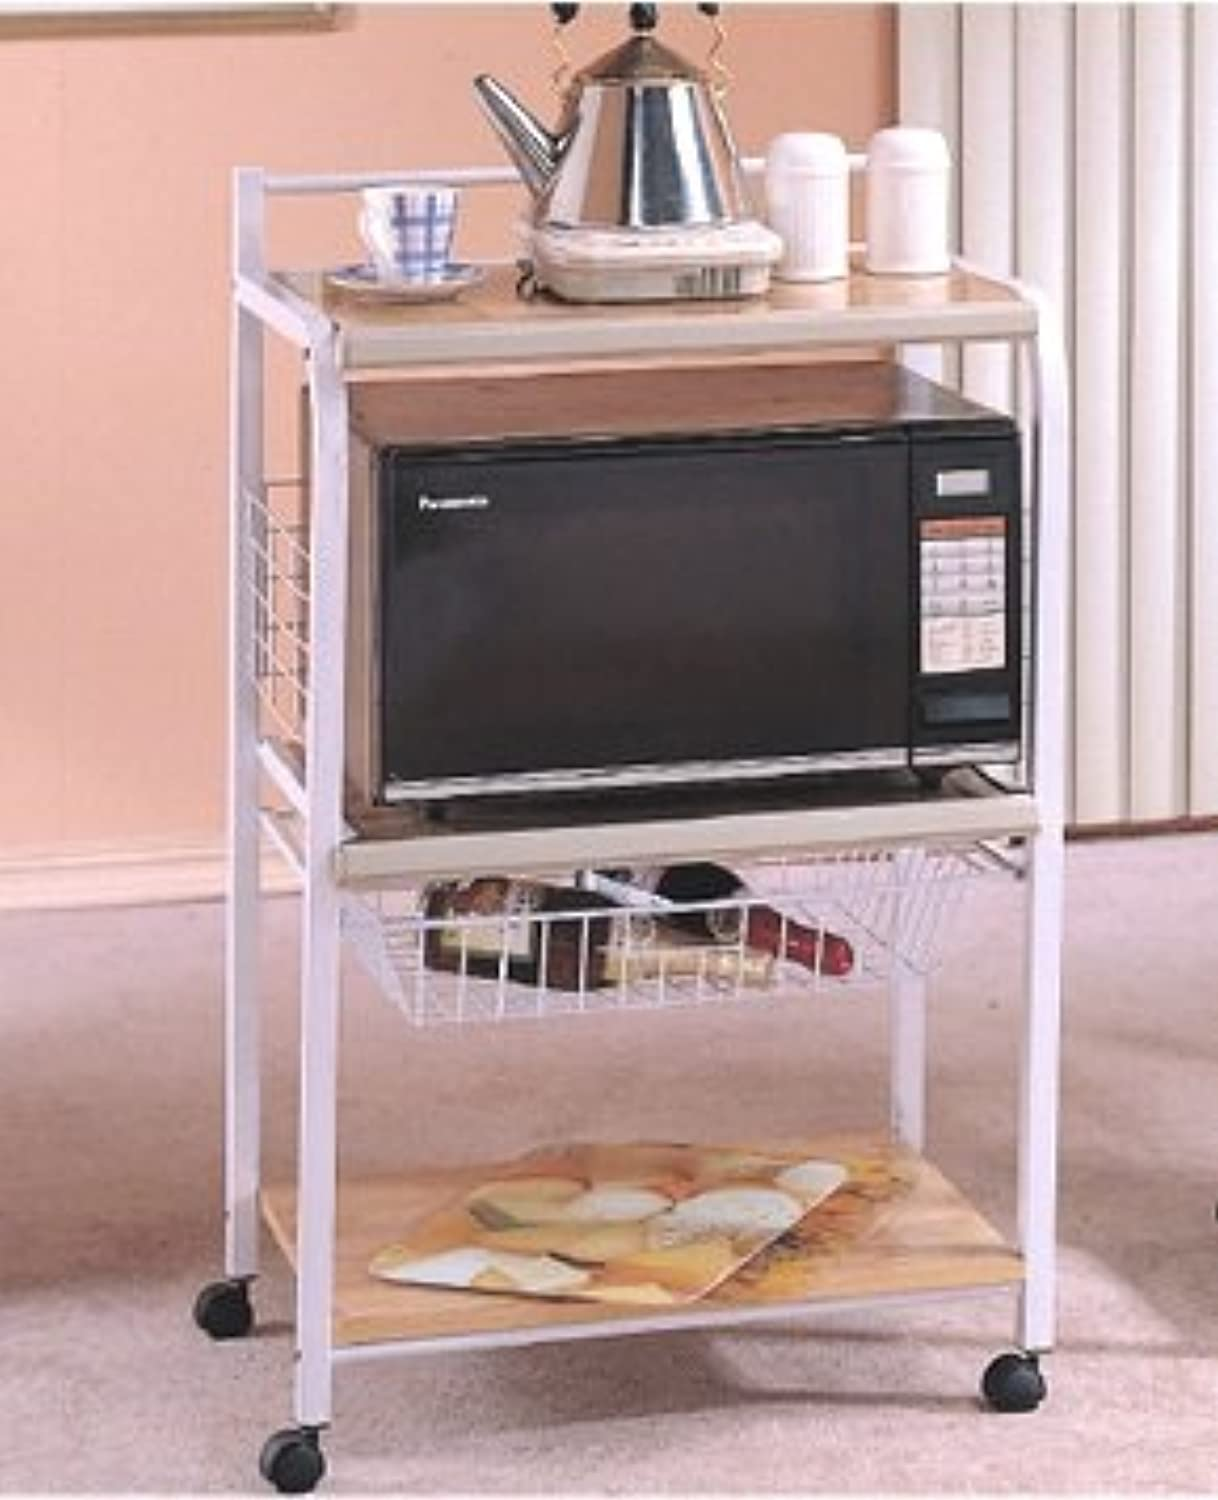 3 Tier Portable Metal Microwave Serving Cart, White